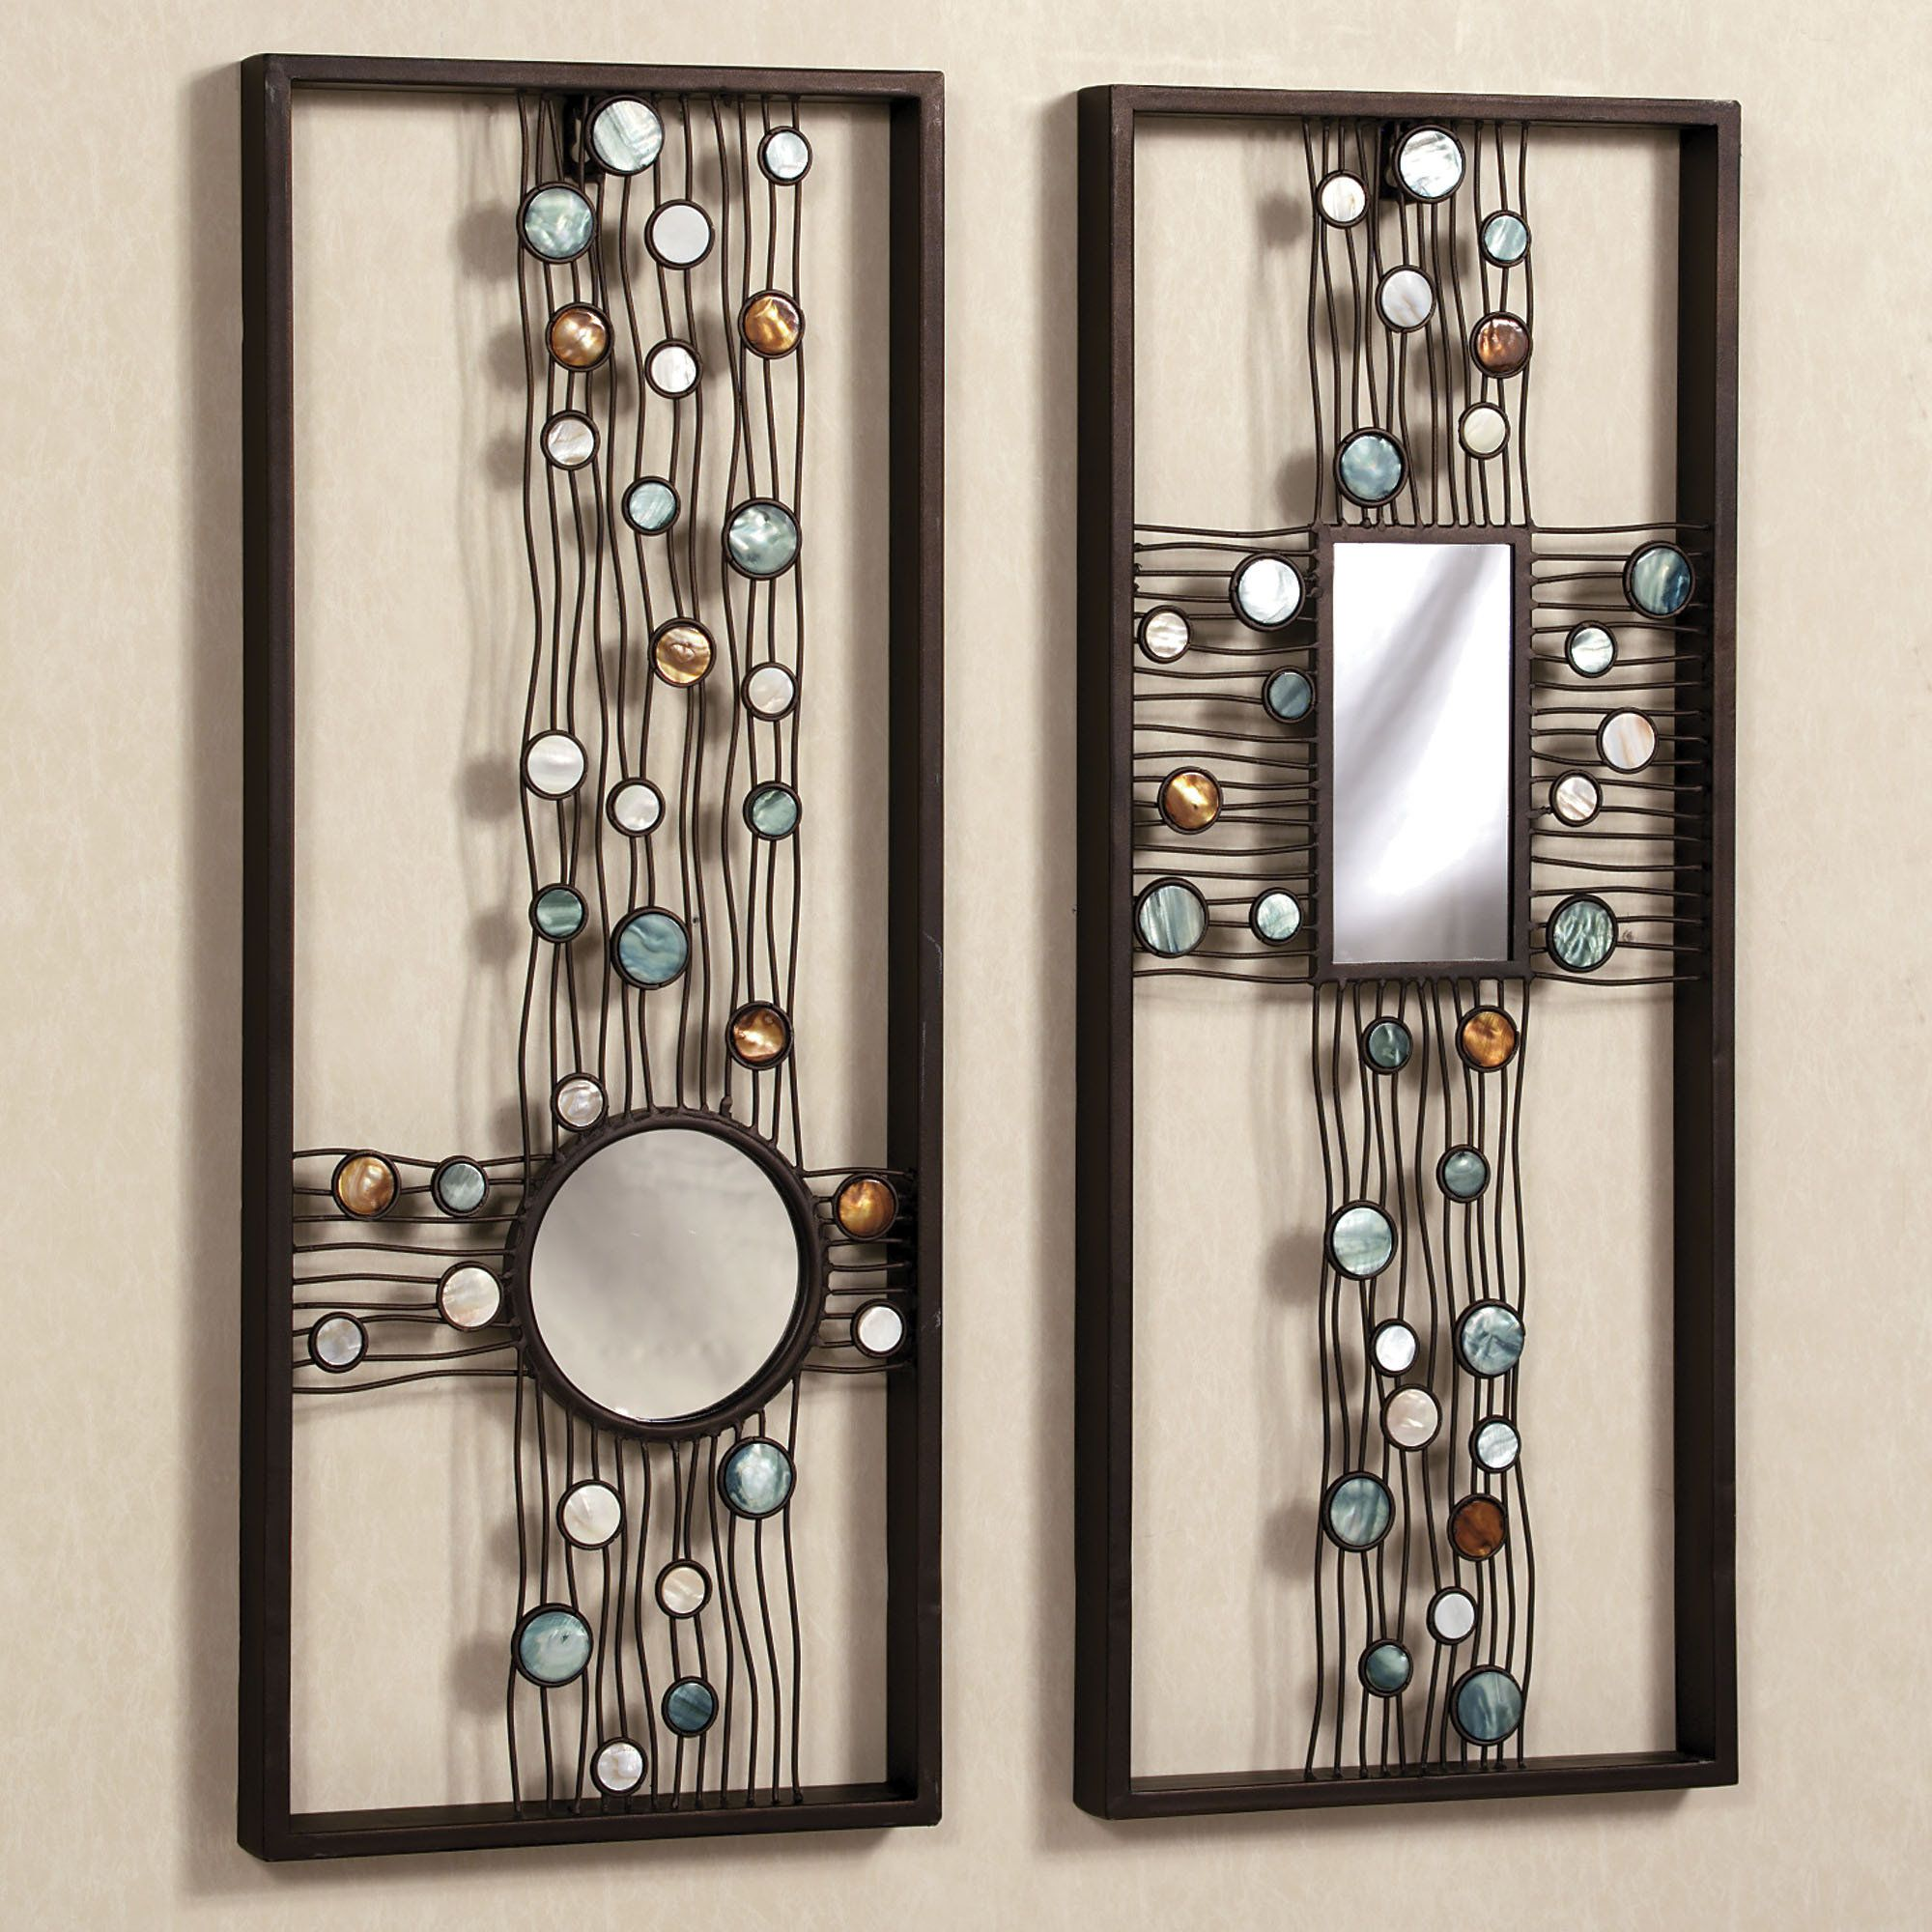 Mirror panels for walls - 17 Best Images About Mirrior On Pinterest Opaline Decorative Mirrors And Wall Mirror Design